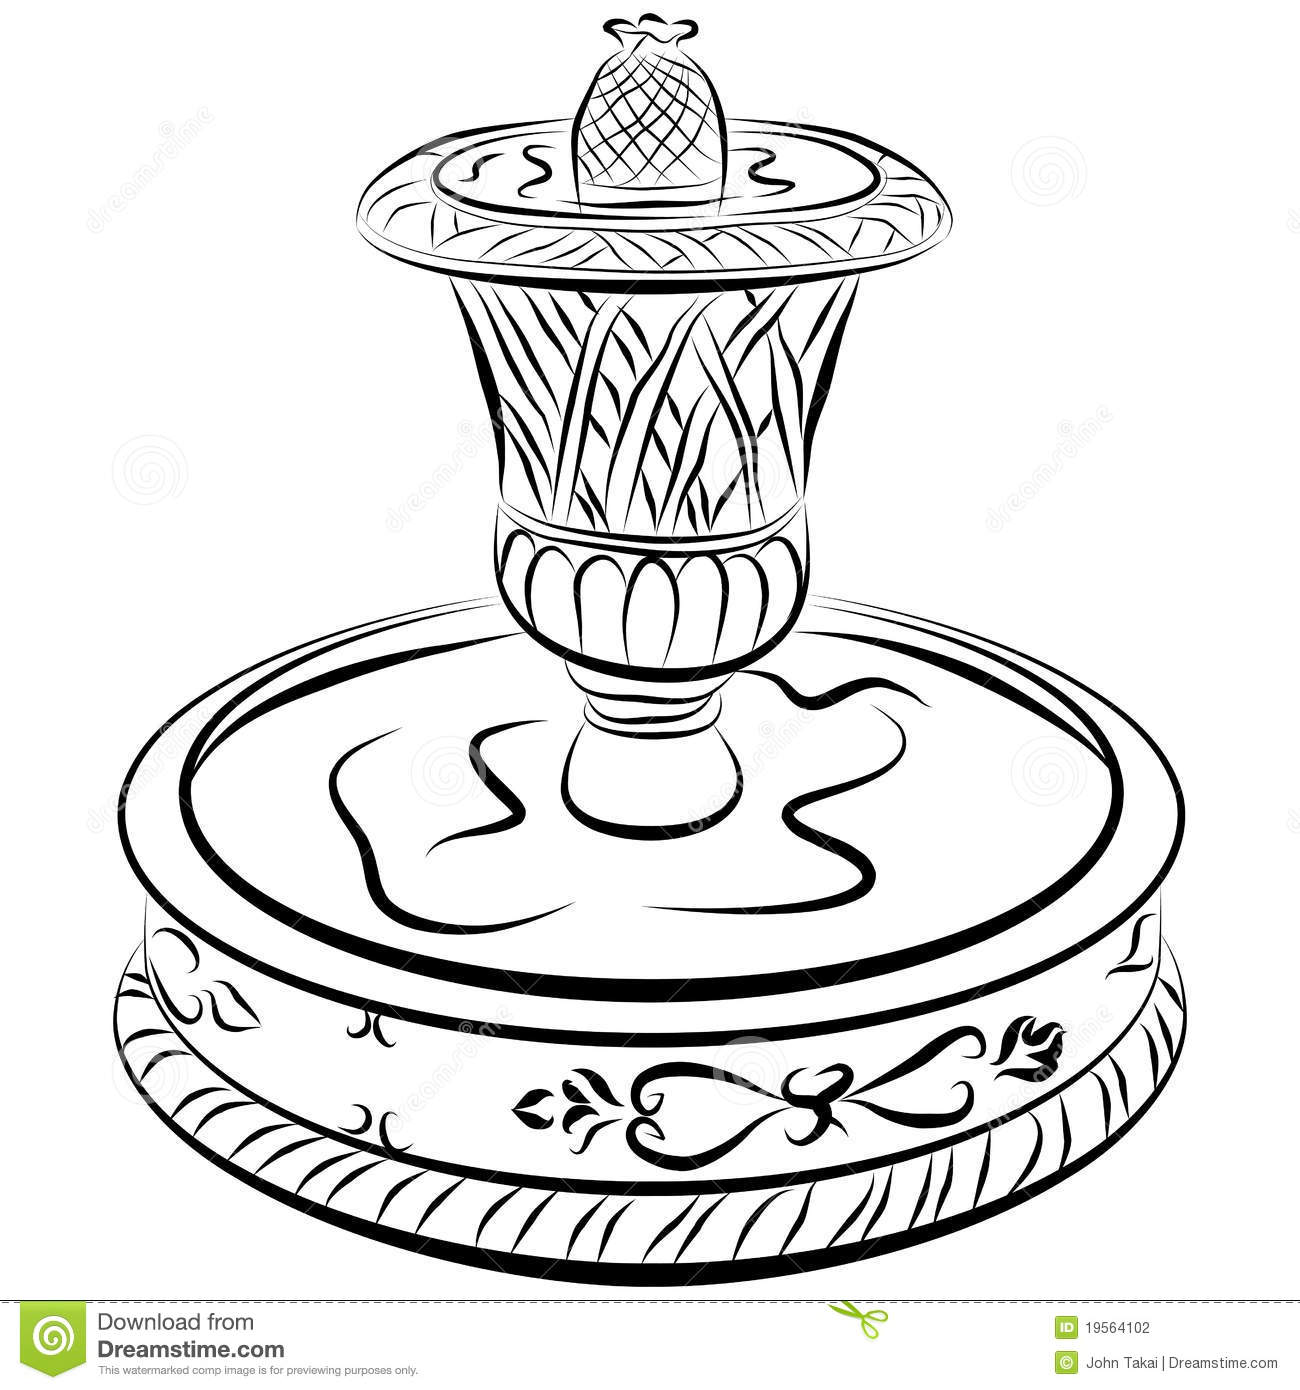 fountain coloring pages - fountain drawing coloring coloring pages